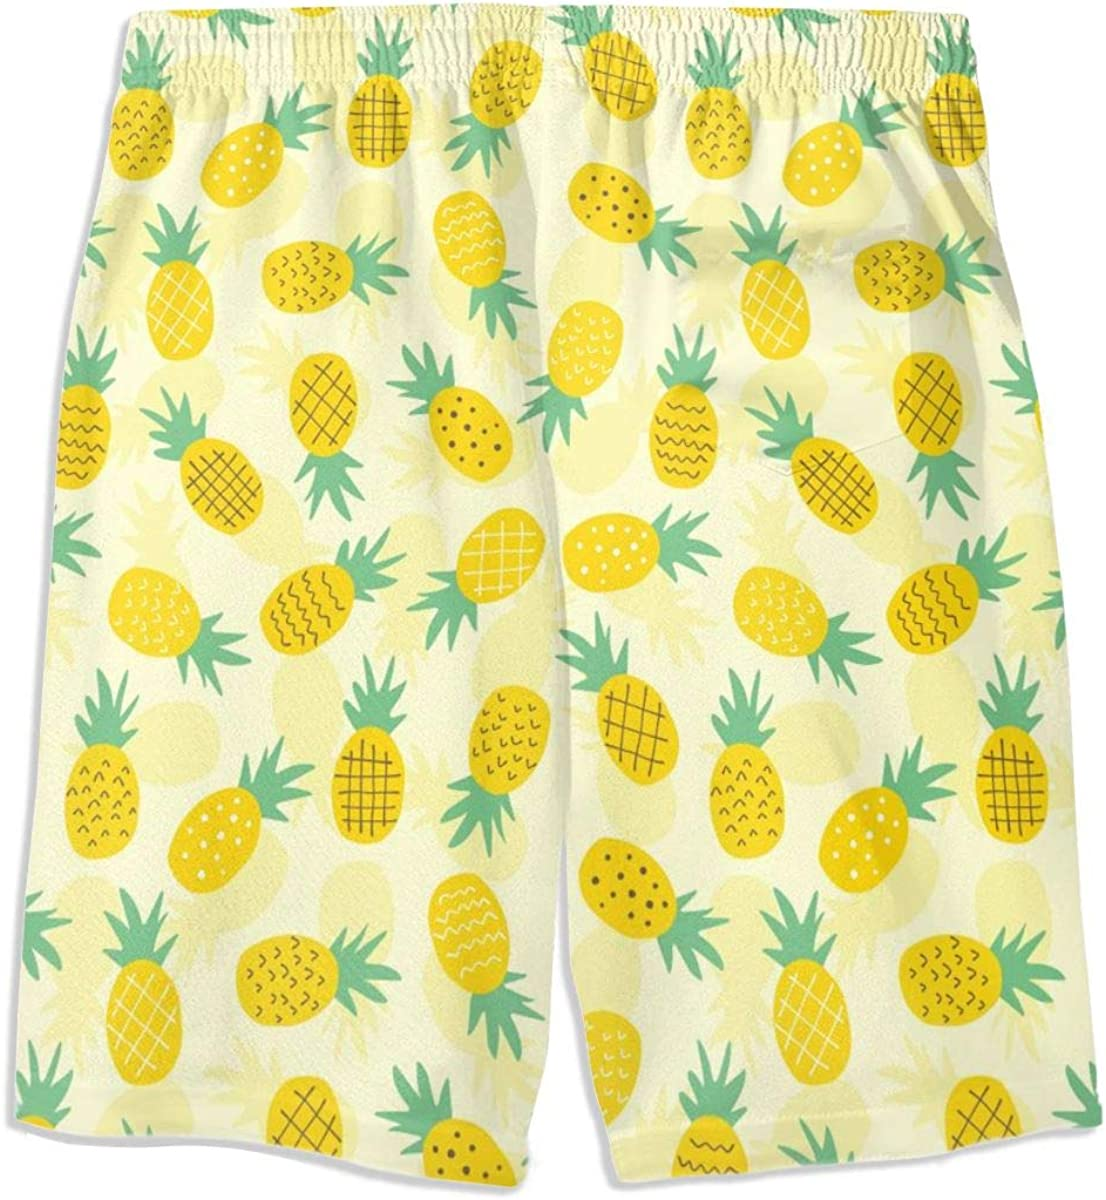 CAWHJDW Boys Swim Trunks Pineapple Splash Quick Dry Board Shorts Beach Size from 7-18 T